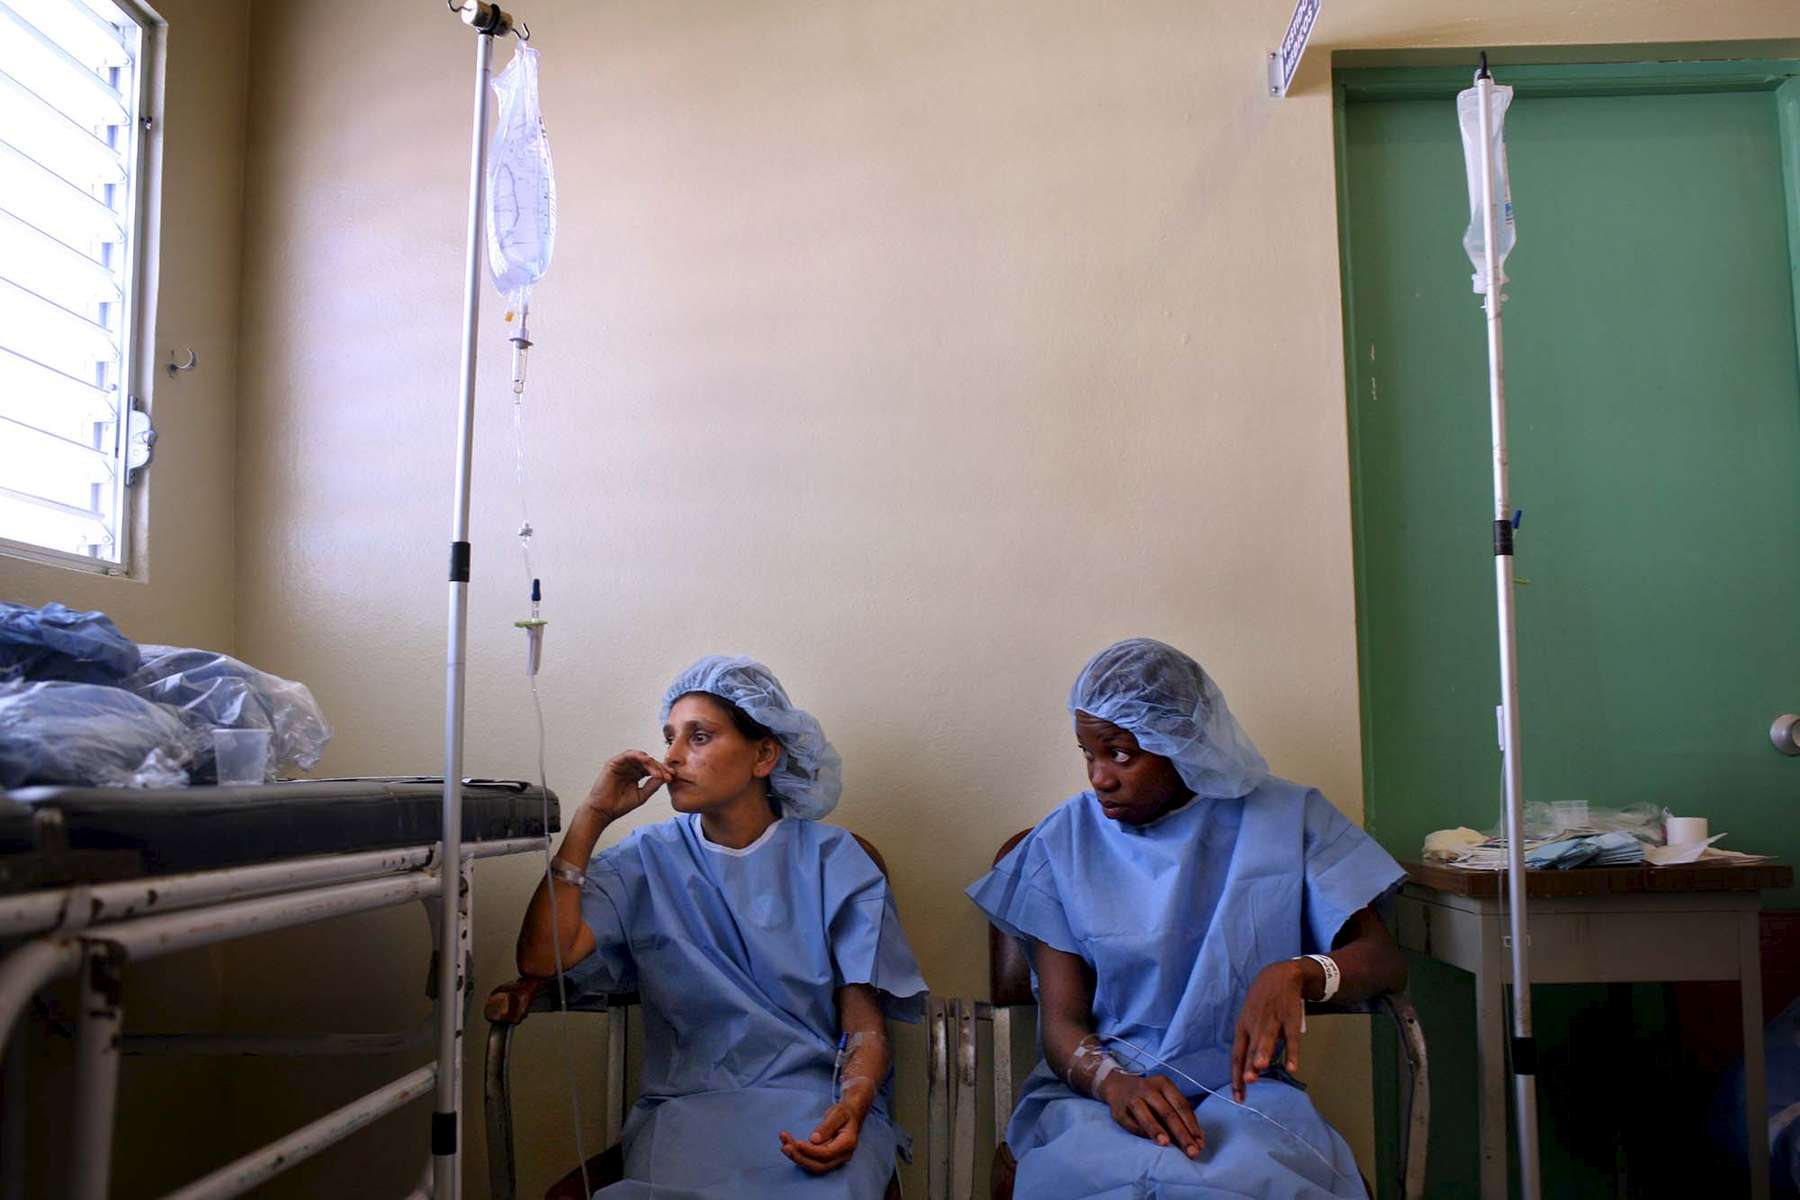 Abilina del Carmen, left, and Elba Rodriguez wait before their surgeries - both were going to have a hysterectomy.